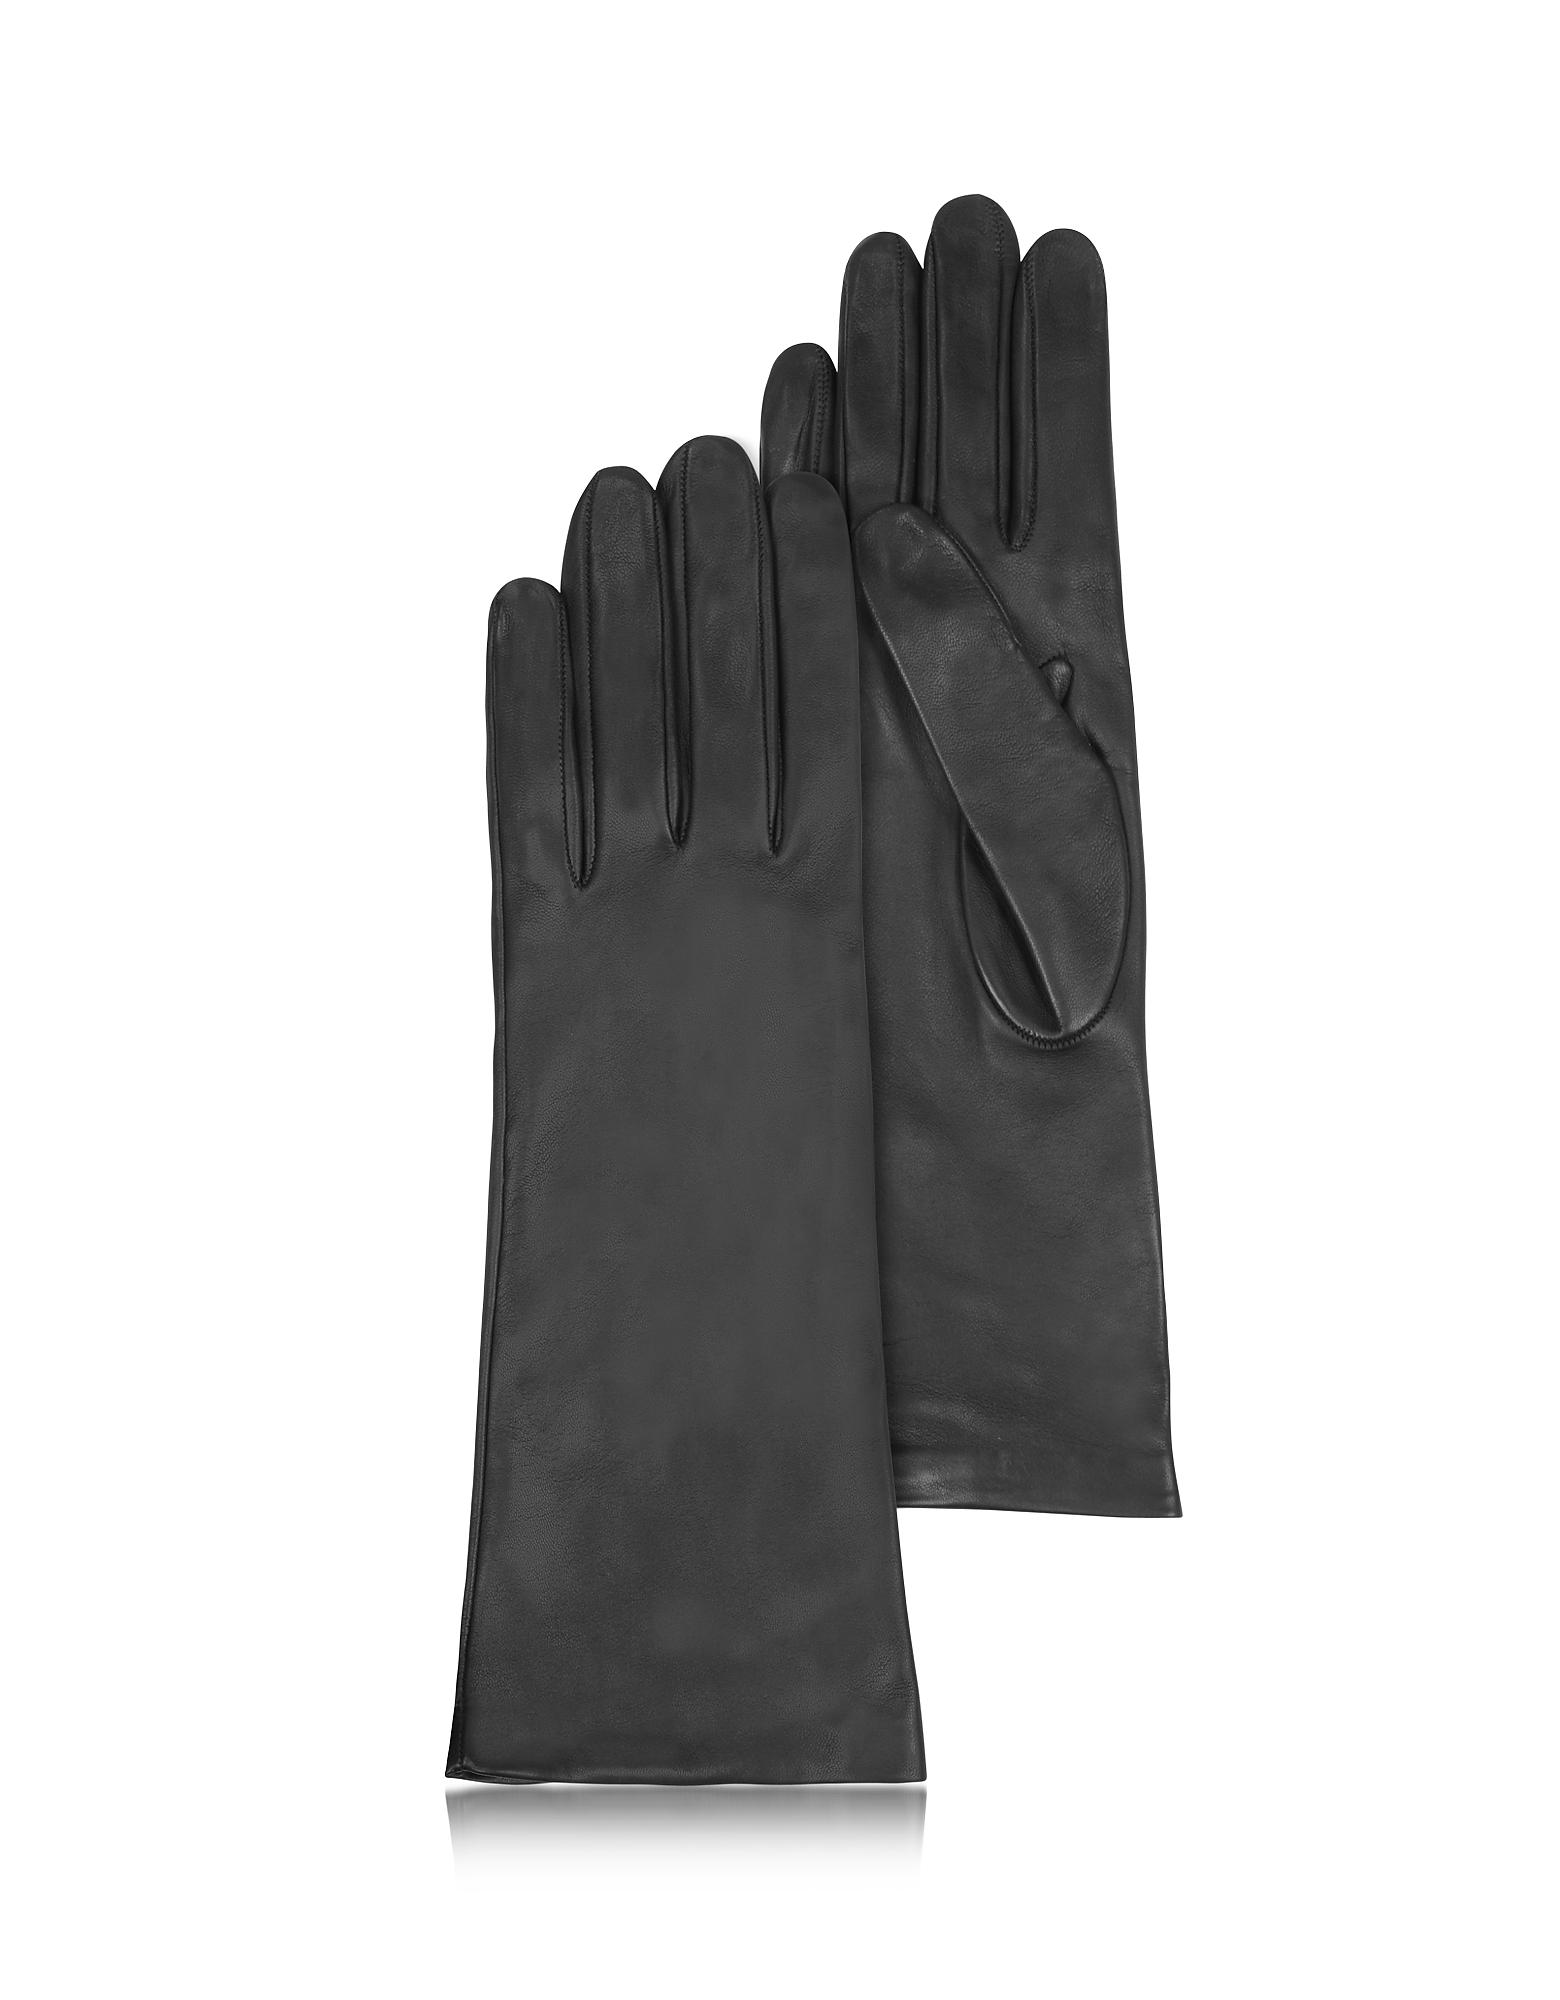 Women's Silk Lined Black Italian Leather Long Gloves от Forzieri.com INT